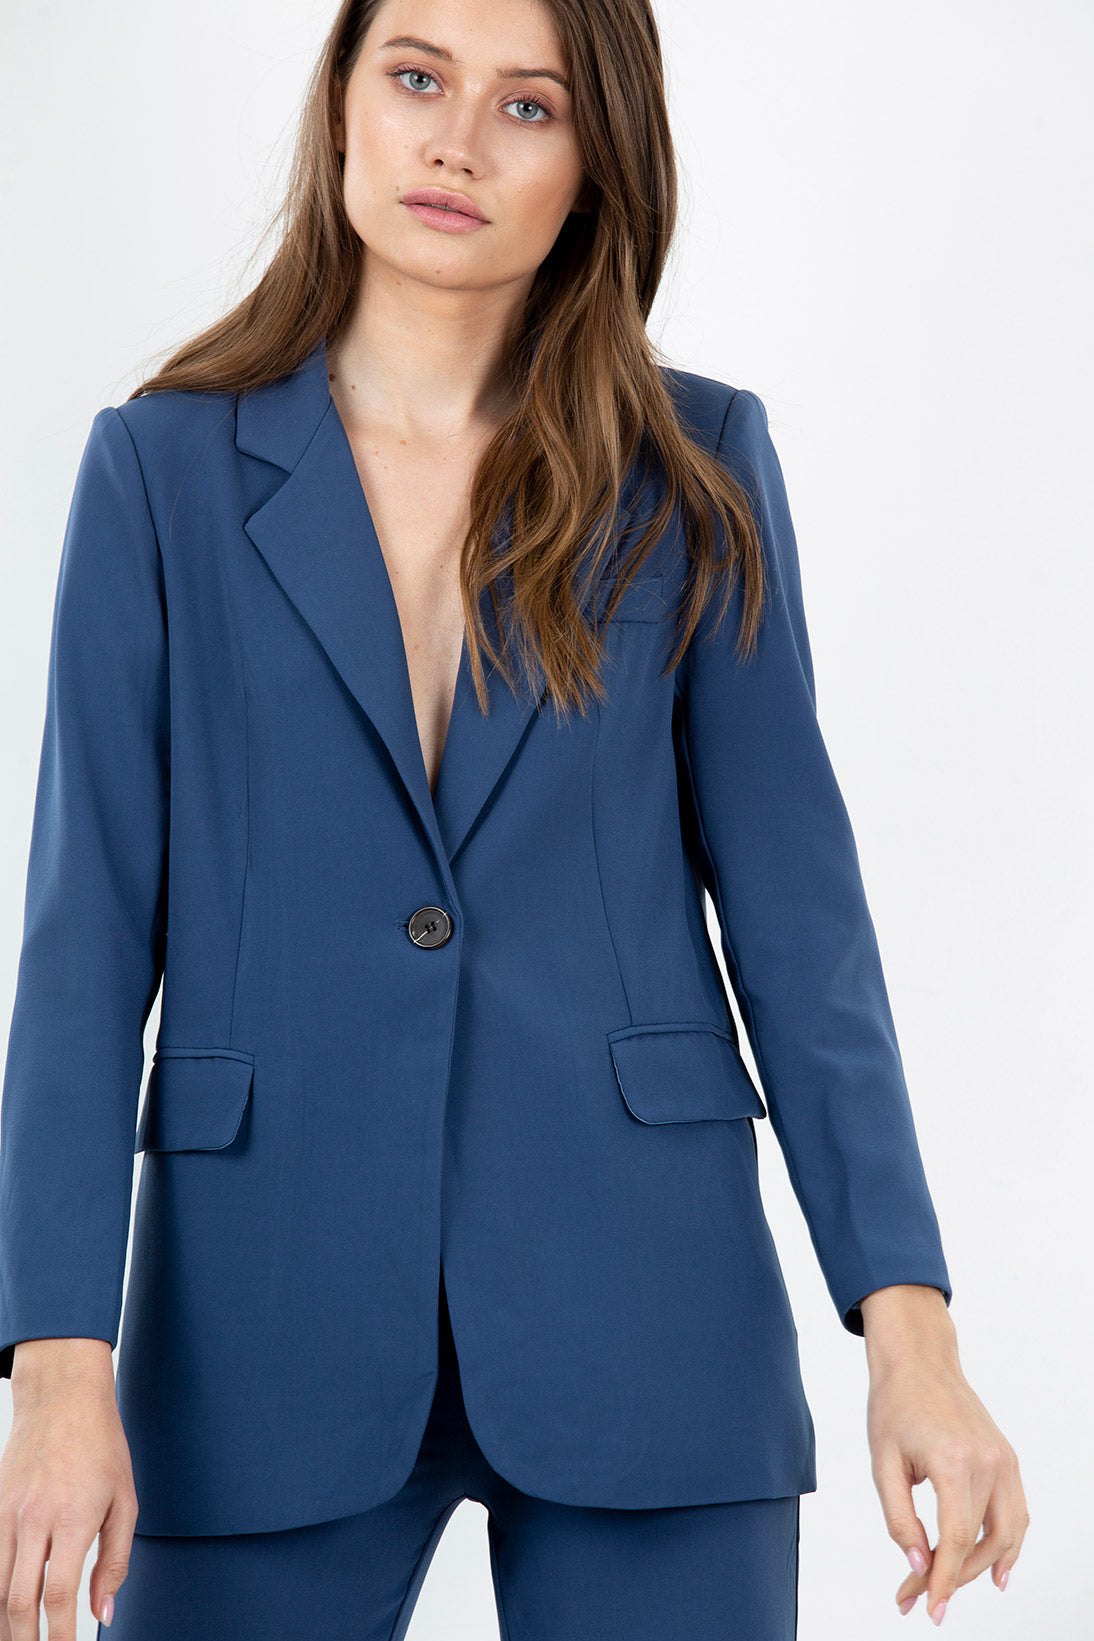 City silk suit jacket